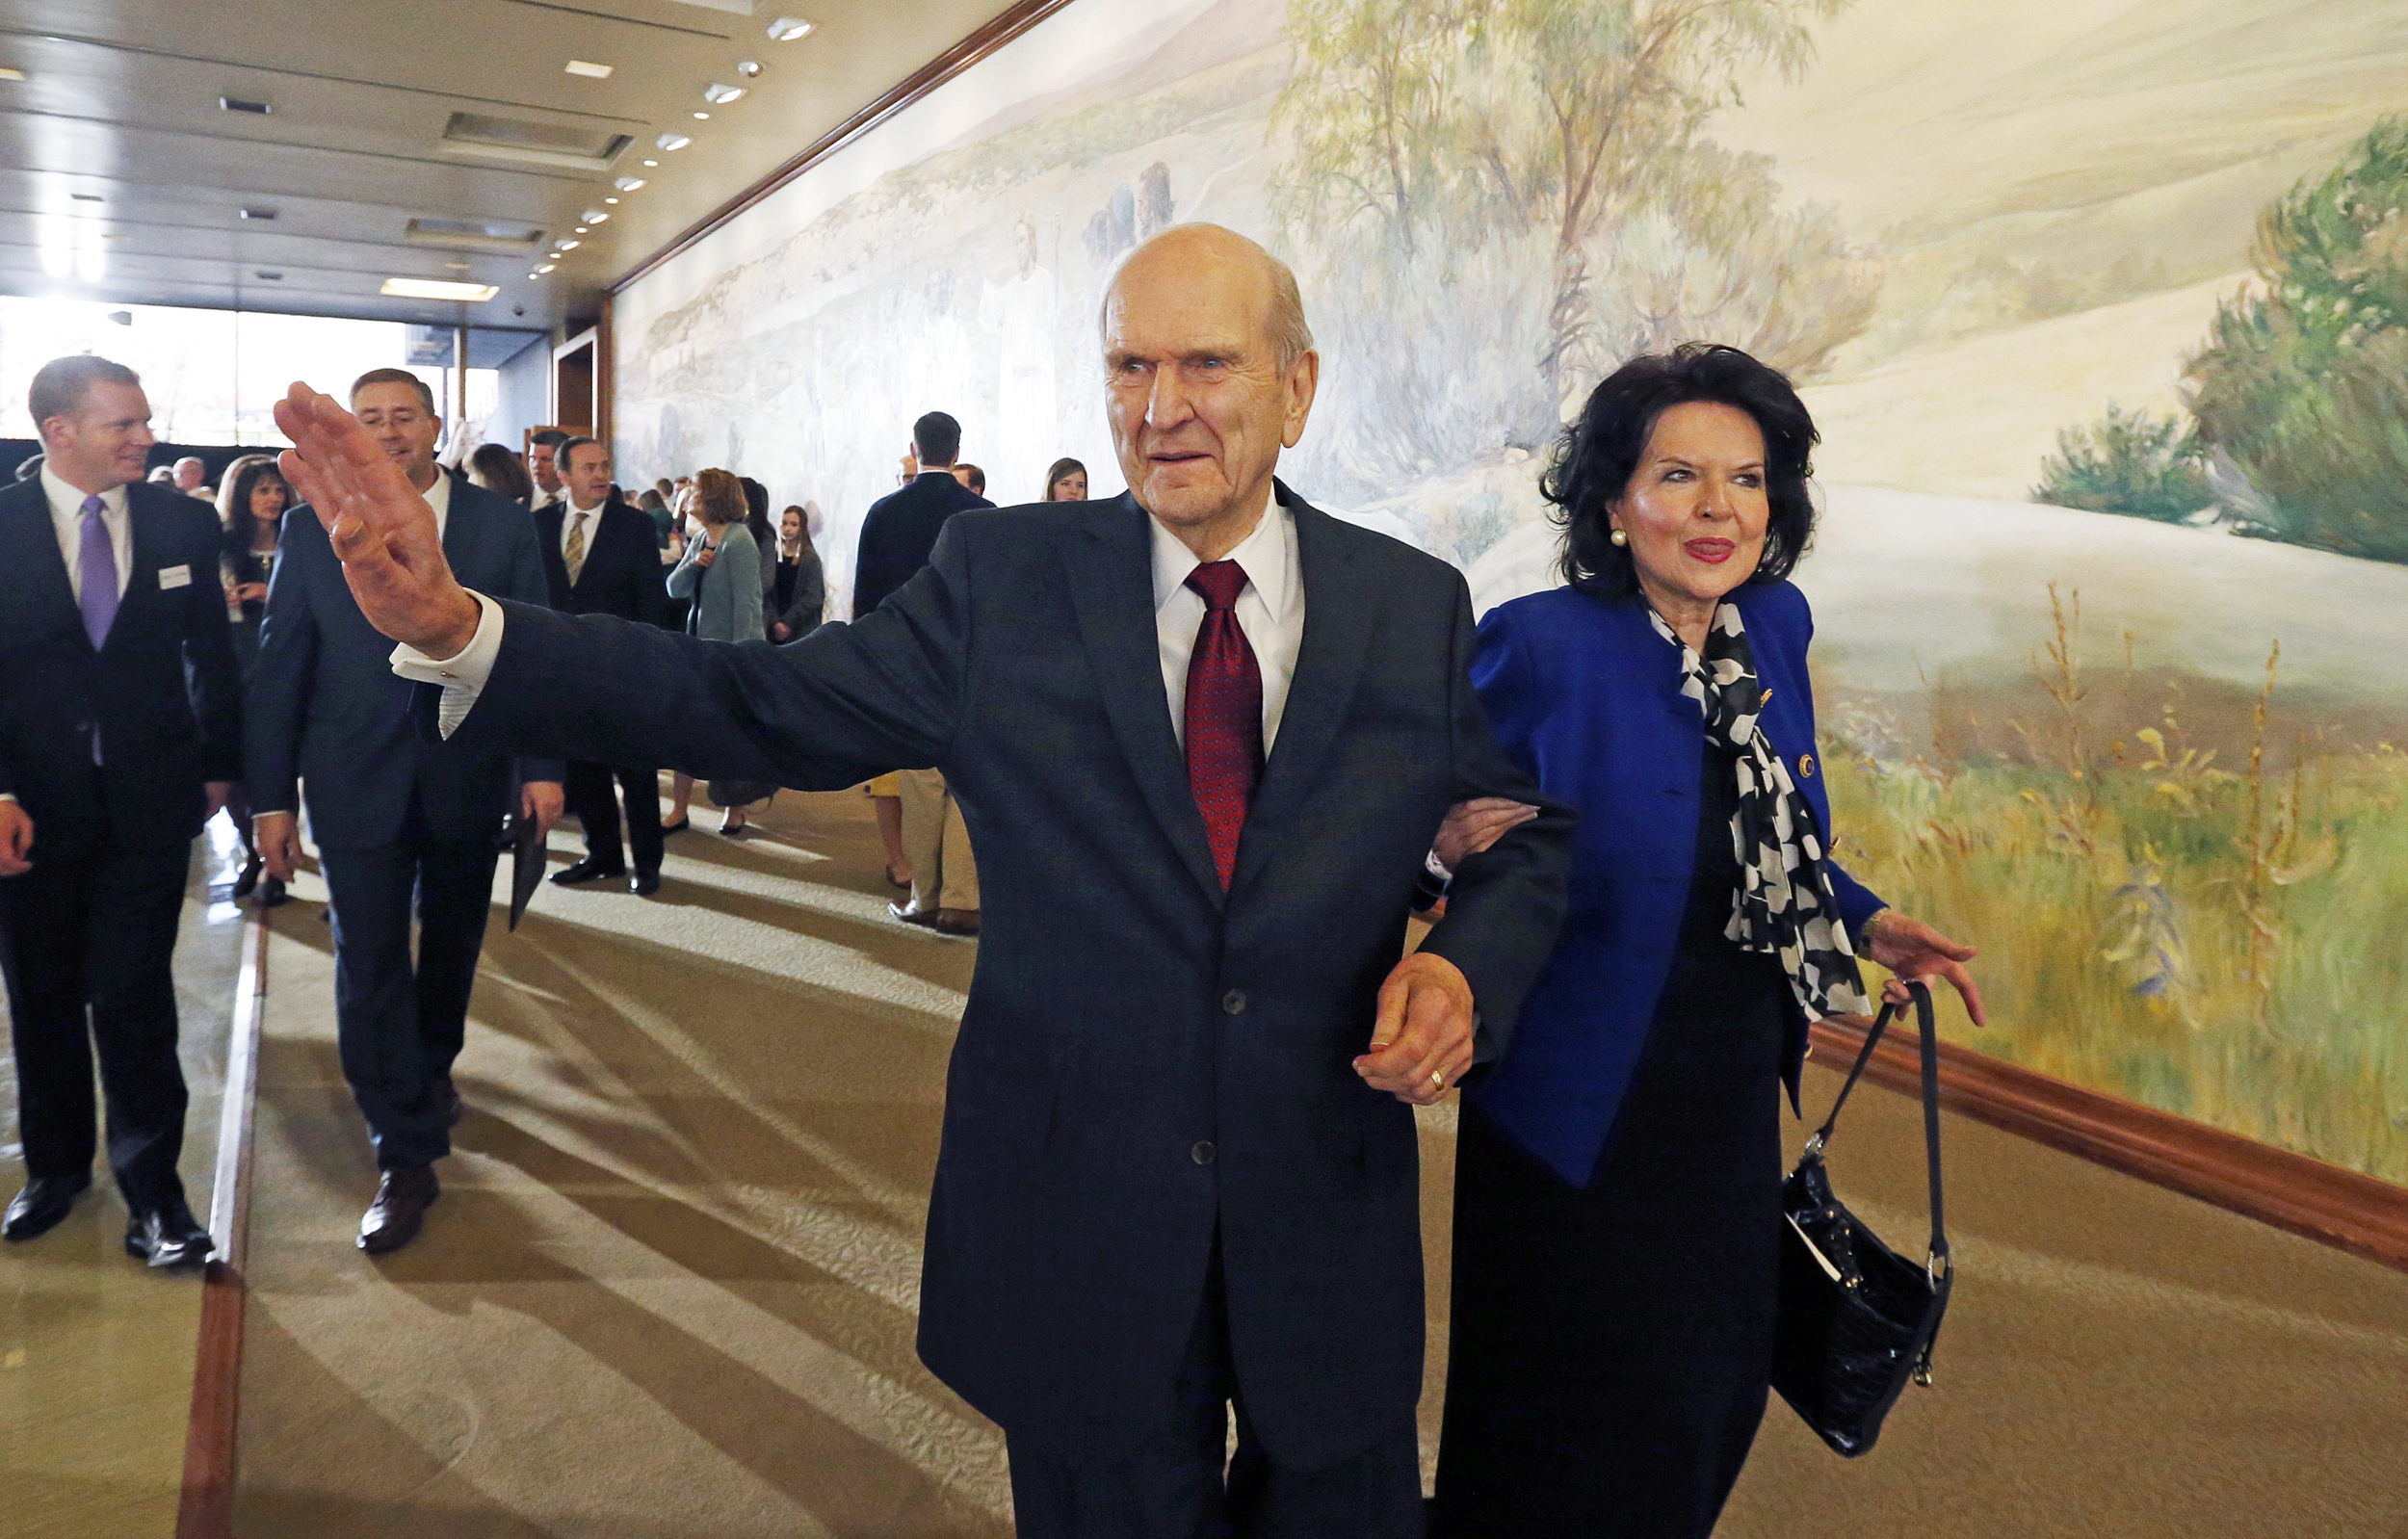 In with the old: New president unlikely to transform Mormon church